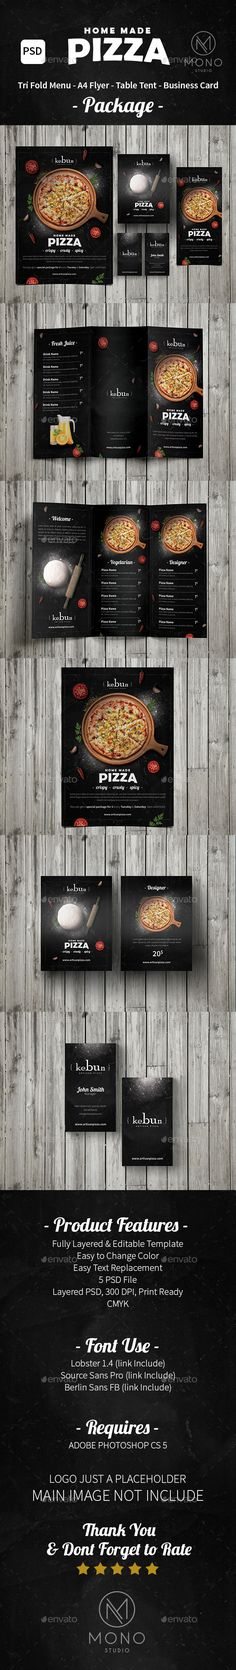 Pizza Menu Set/Rustic — Photoshop PSD #juice #restaurant • Download ➝ https://graphicriver.net/item/pizza-menu-setrustic/14221285?ref=pxcr